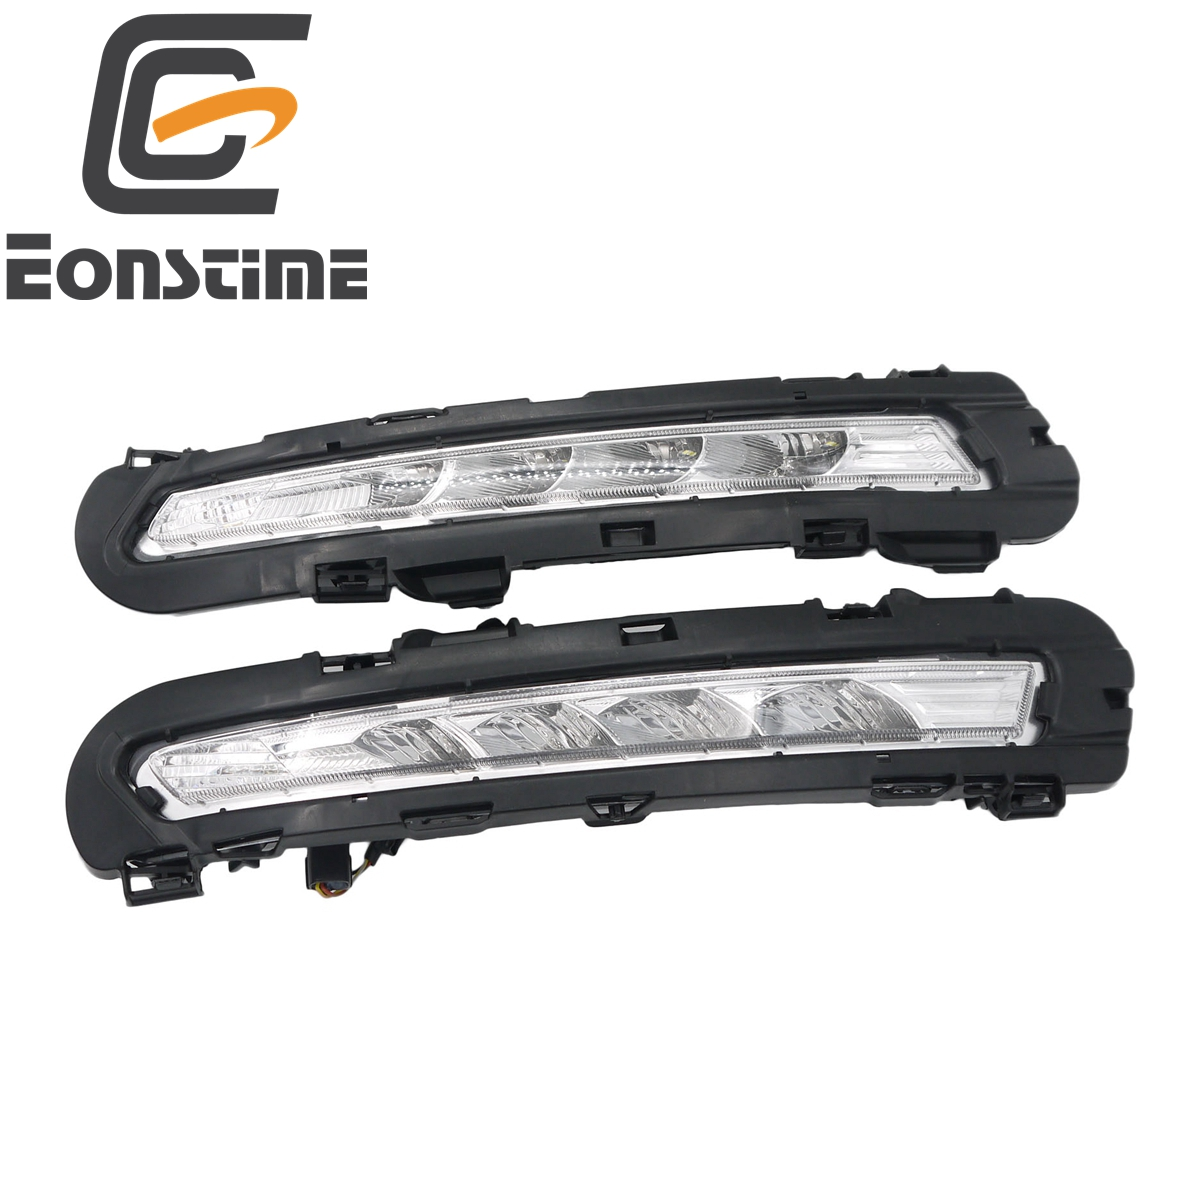 Eonstime 2pcs 12V Car DRL LED Daytime Running Light Fog lights Turn lights Relay Daylight For Ford Mondeo 2011 2012 car styling icoco 3 led waterproof car light universal daytime running lights dc12v super white auto car fog lamps car styling